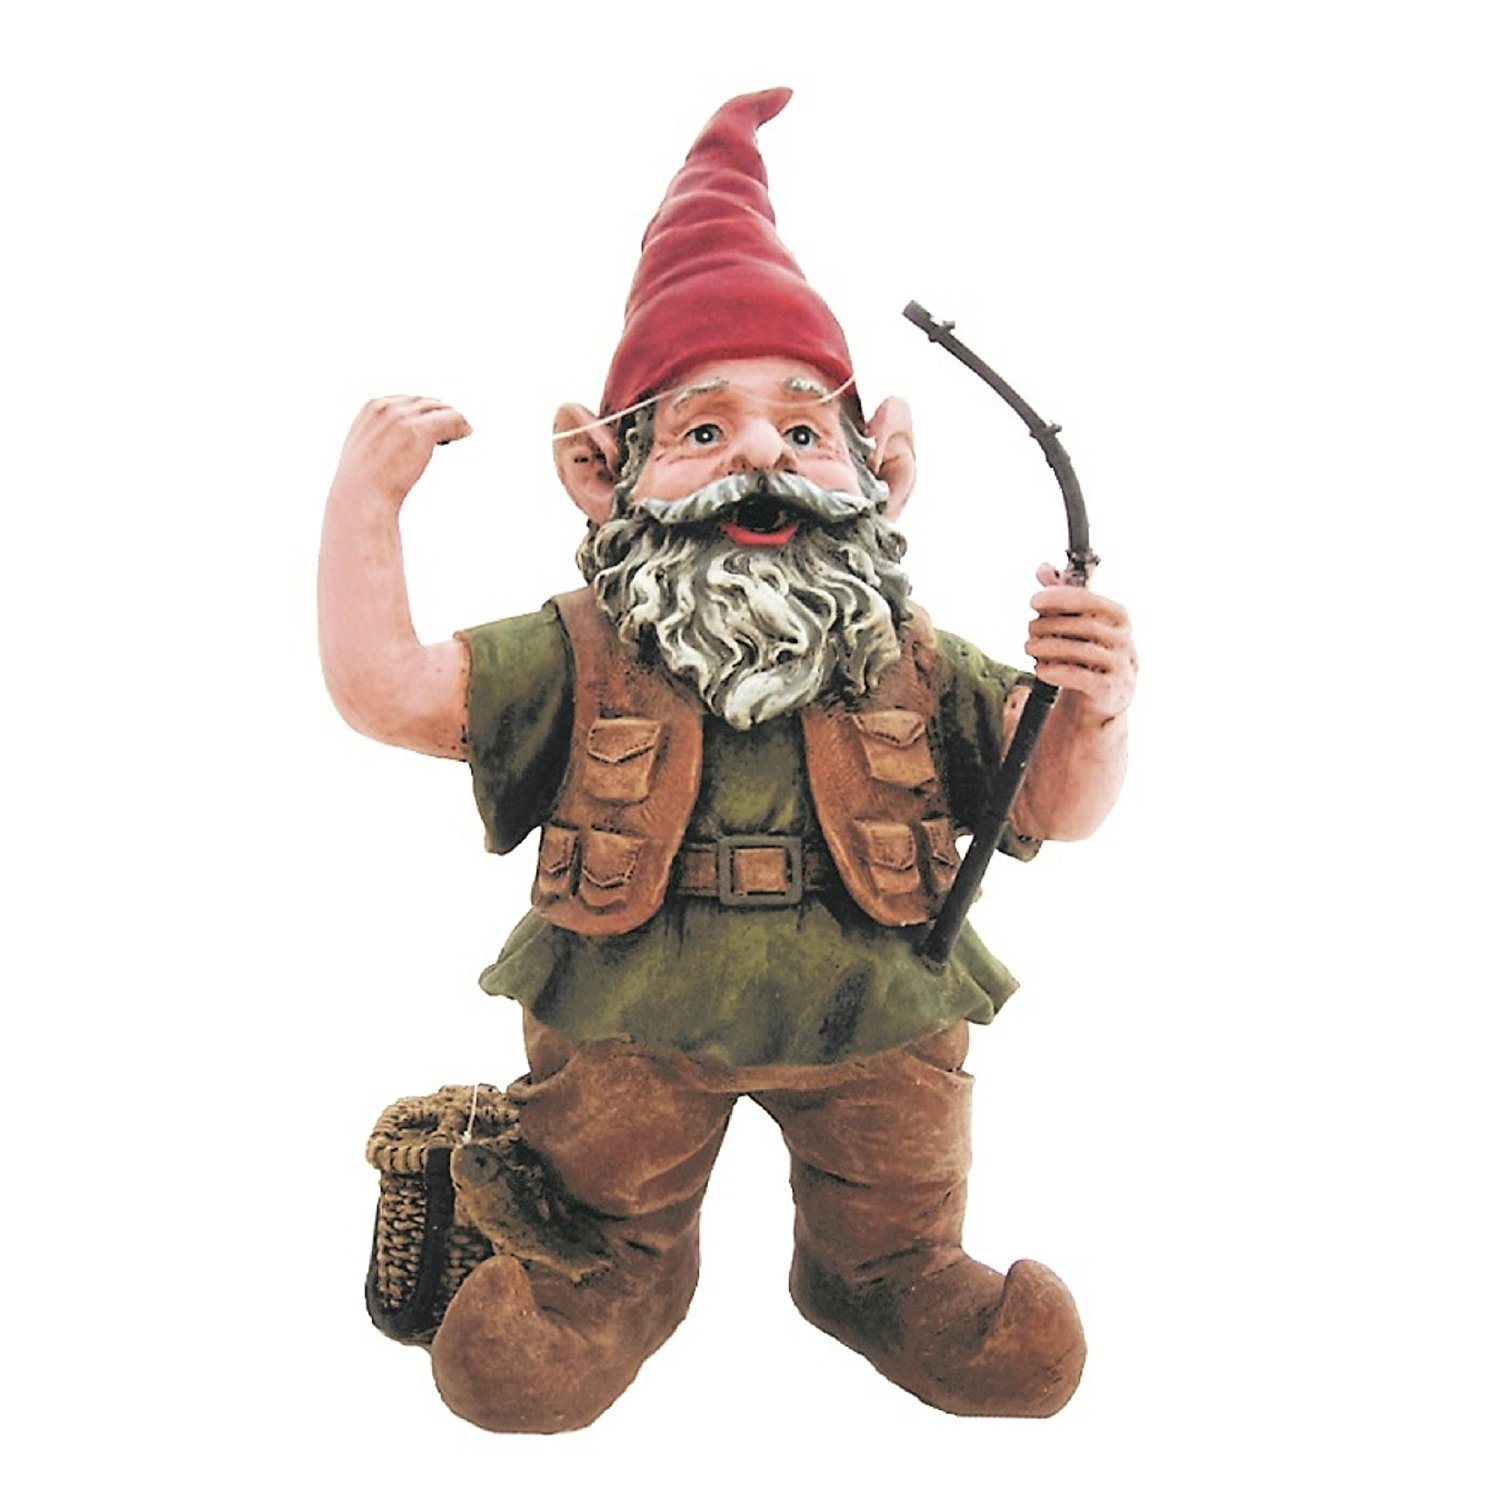 "Nowaday Gnomes Fisherman Gnome Holding Fishing Pole Home & Garden Gnome Statue 21"" H"